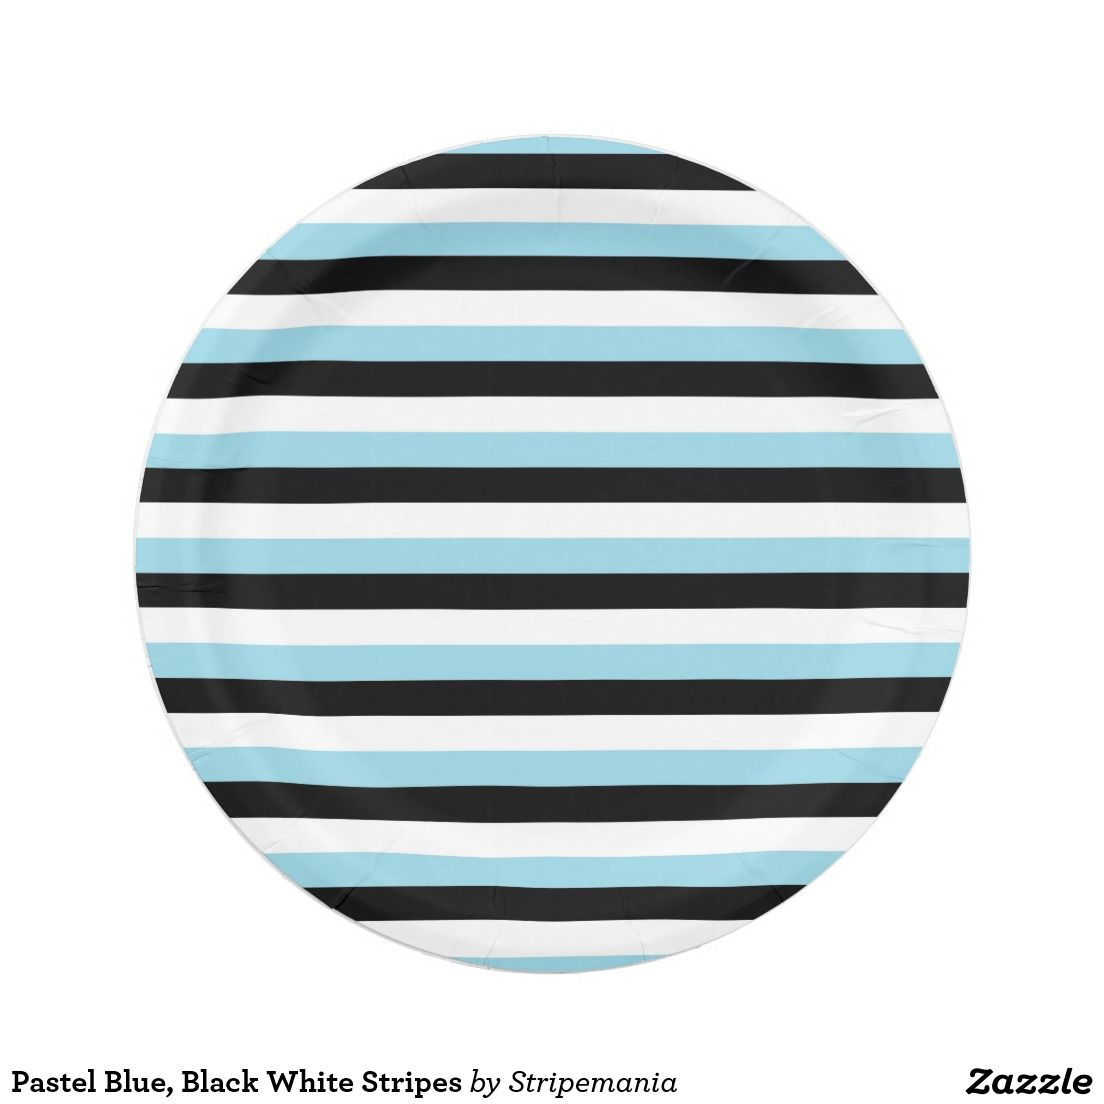 Pastel Blue Black White Stripes Paper Plate  sc 1 st  Pinterest & Pastel Blue Black White Stripes Paper Plate | Zazzle products ...